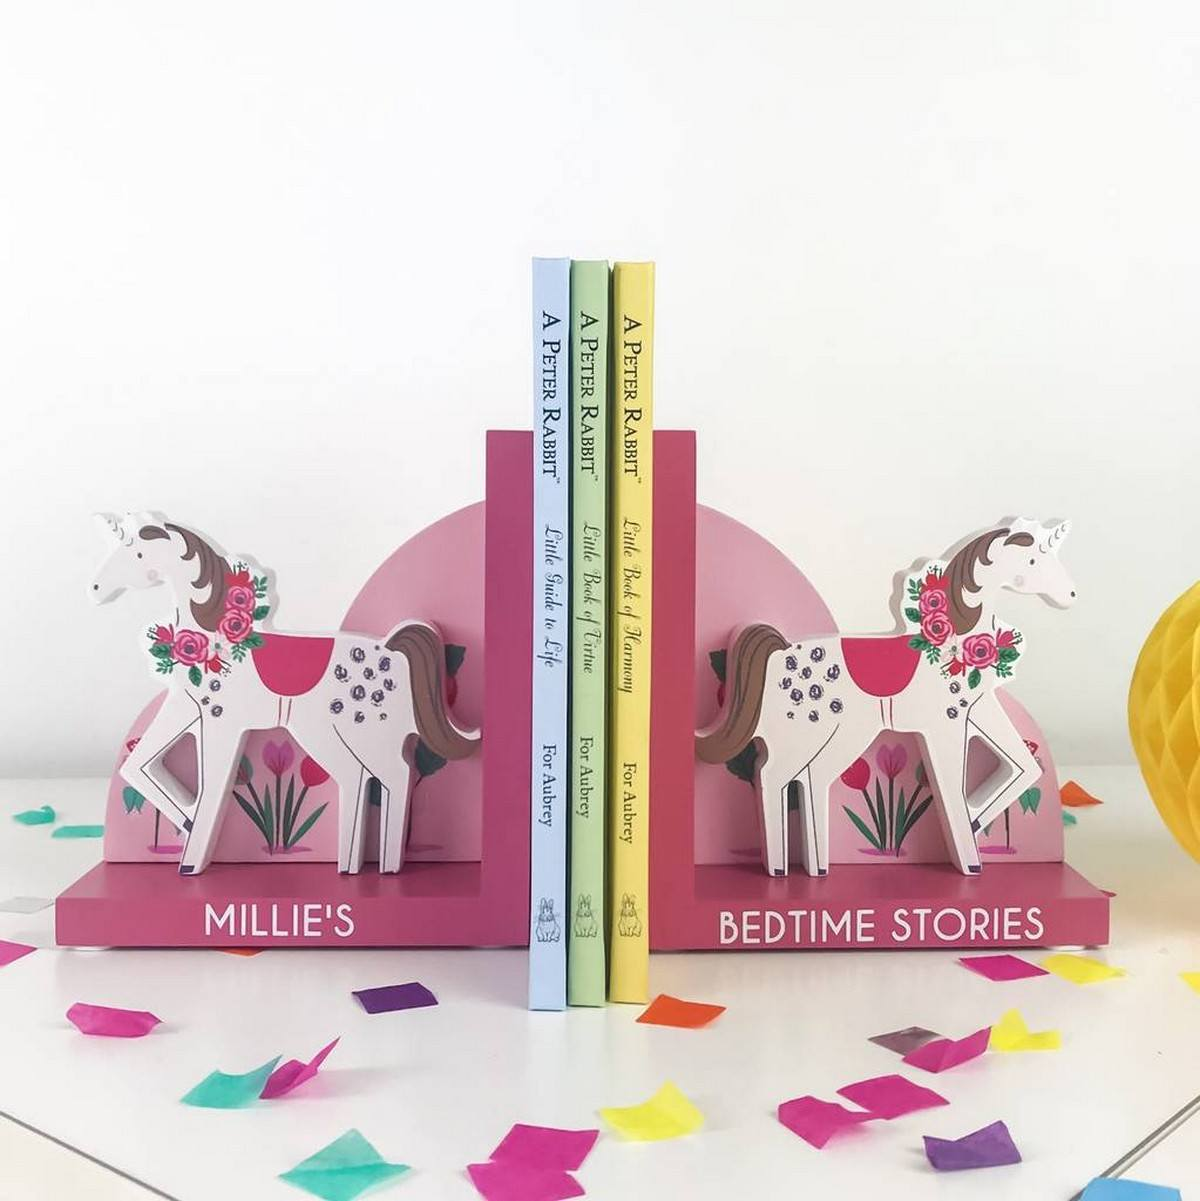 Unicorns are adorable! Whether you are a kid or just love all kinds of fantasy and magic creatures, unicorns are right what can bring a cool and whimsy touch to your space. Here are some ideas to do that with style.